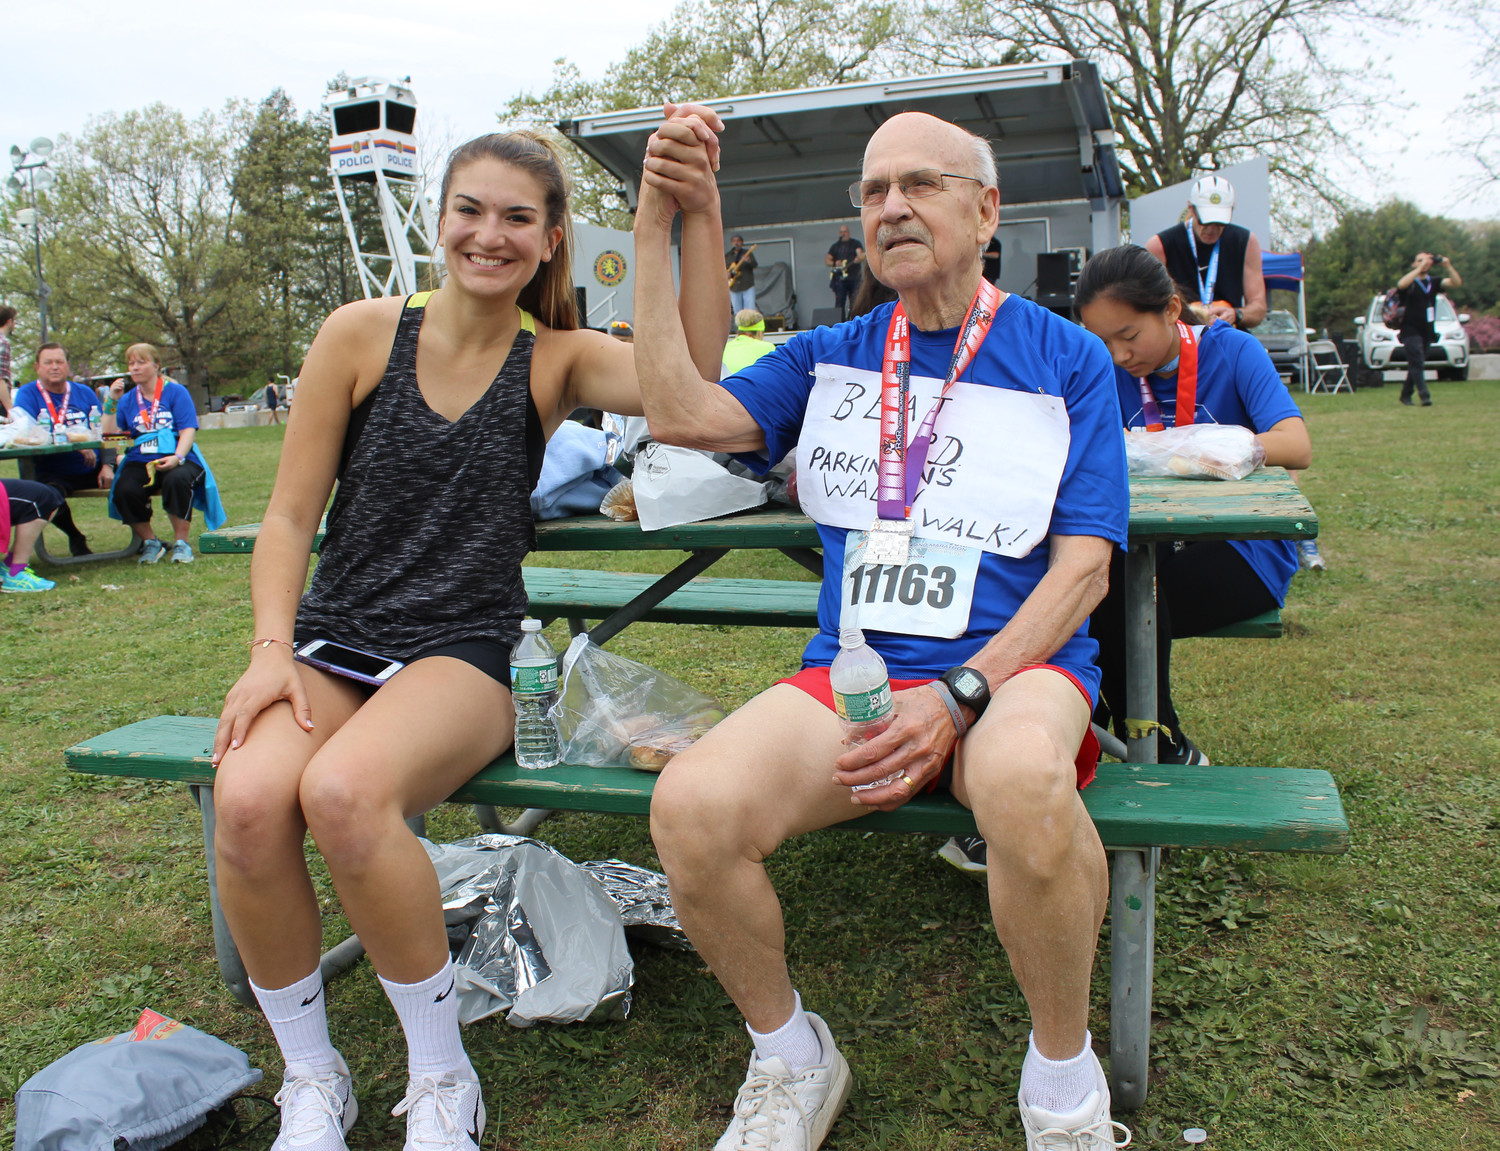 Nestor Barrezueta, 83, of East Meadow, has battled Parkinson's for 20 years, but he doesn't let it stop him from running. He competed in the Long Island Marathon last Sunday with his granddaughter Anna Paulik, 22.